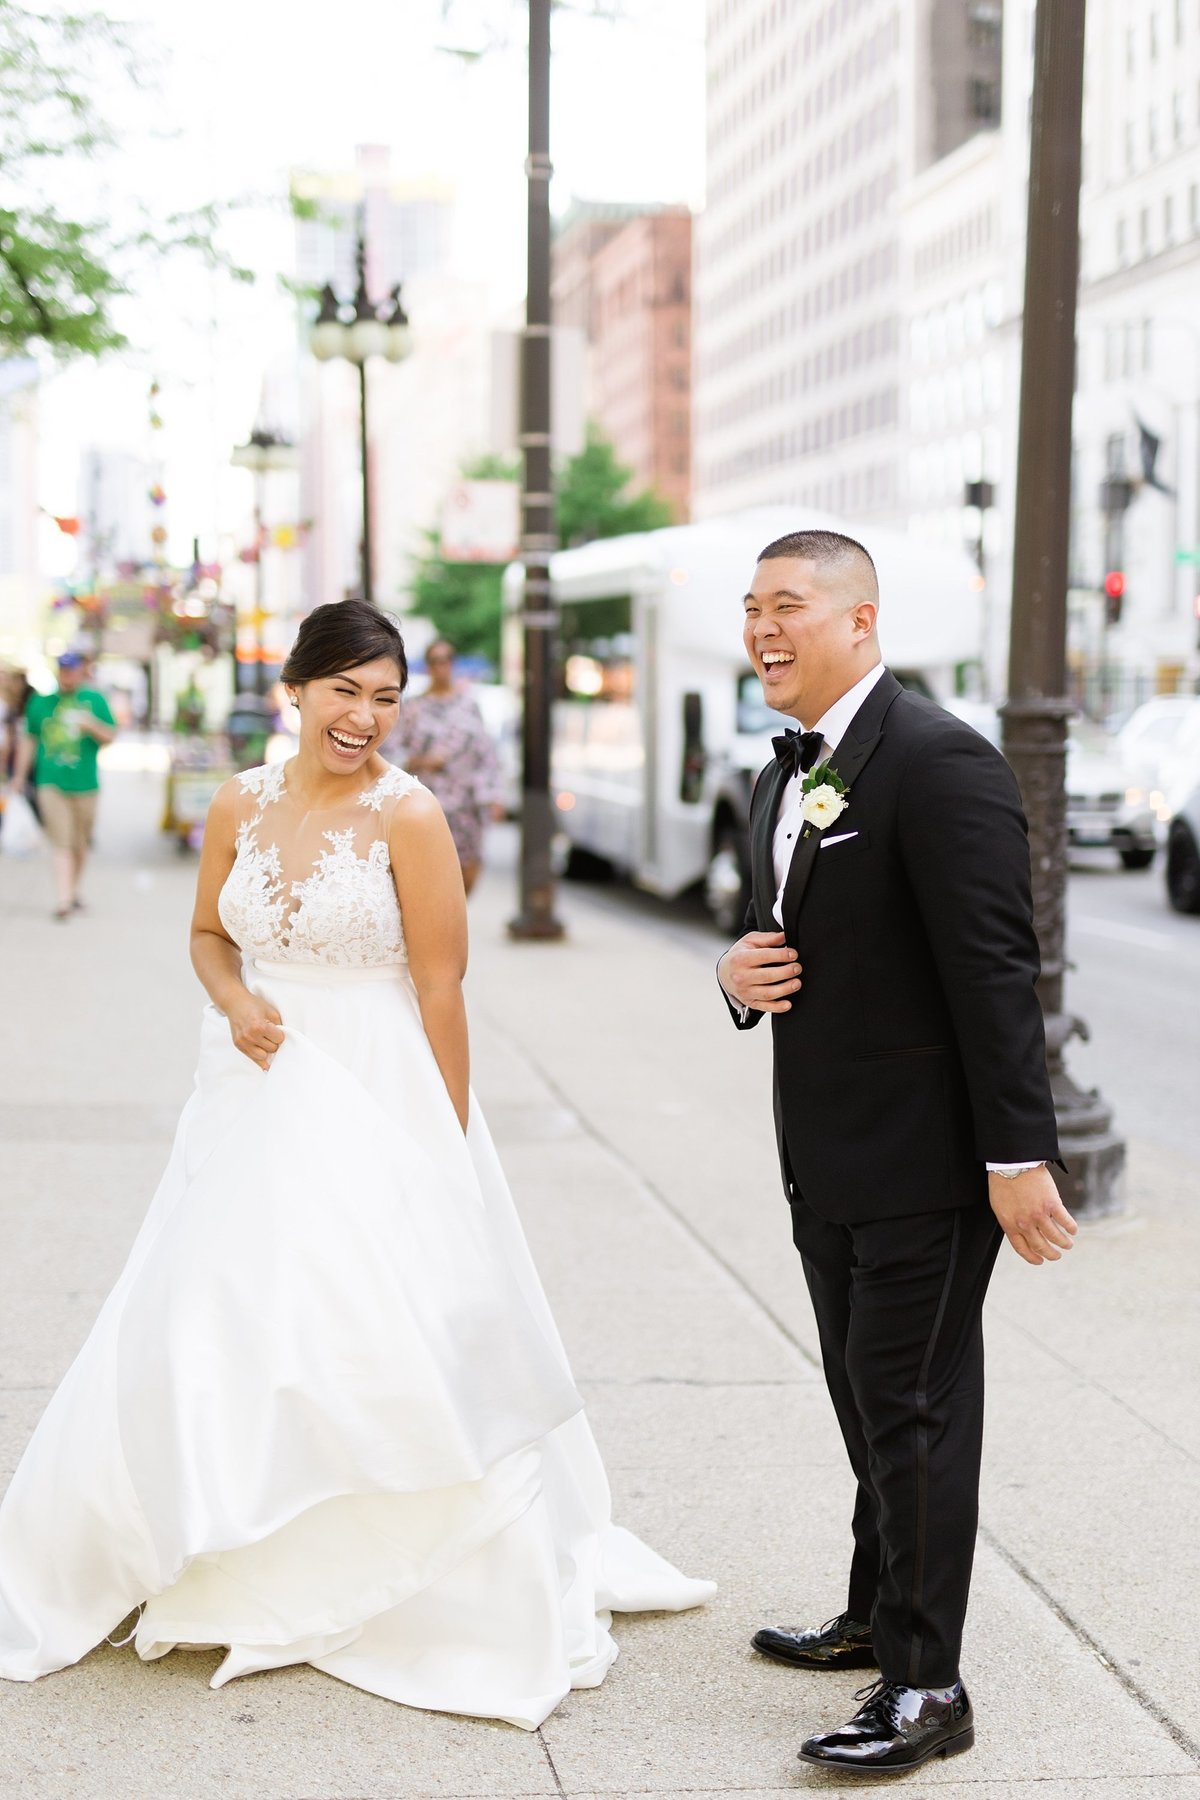 Jessica-Henry-Downtown-Chicago-Wedding-2018-Breanne-Rochelle-Photography64